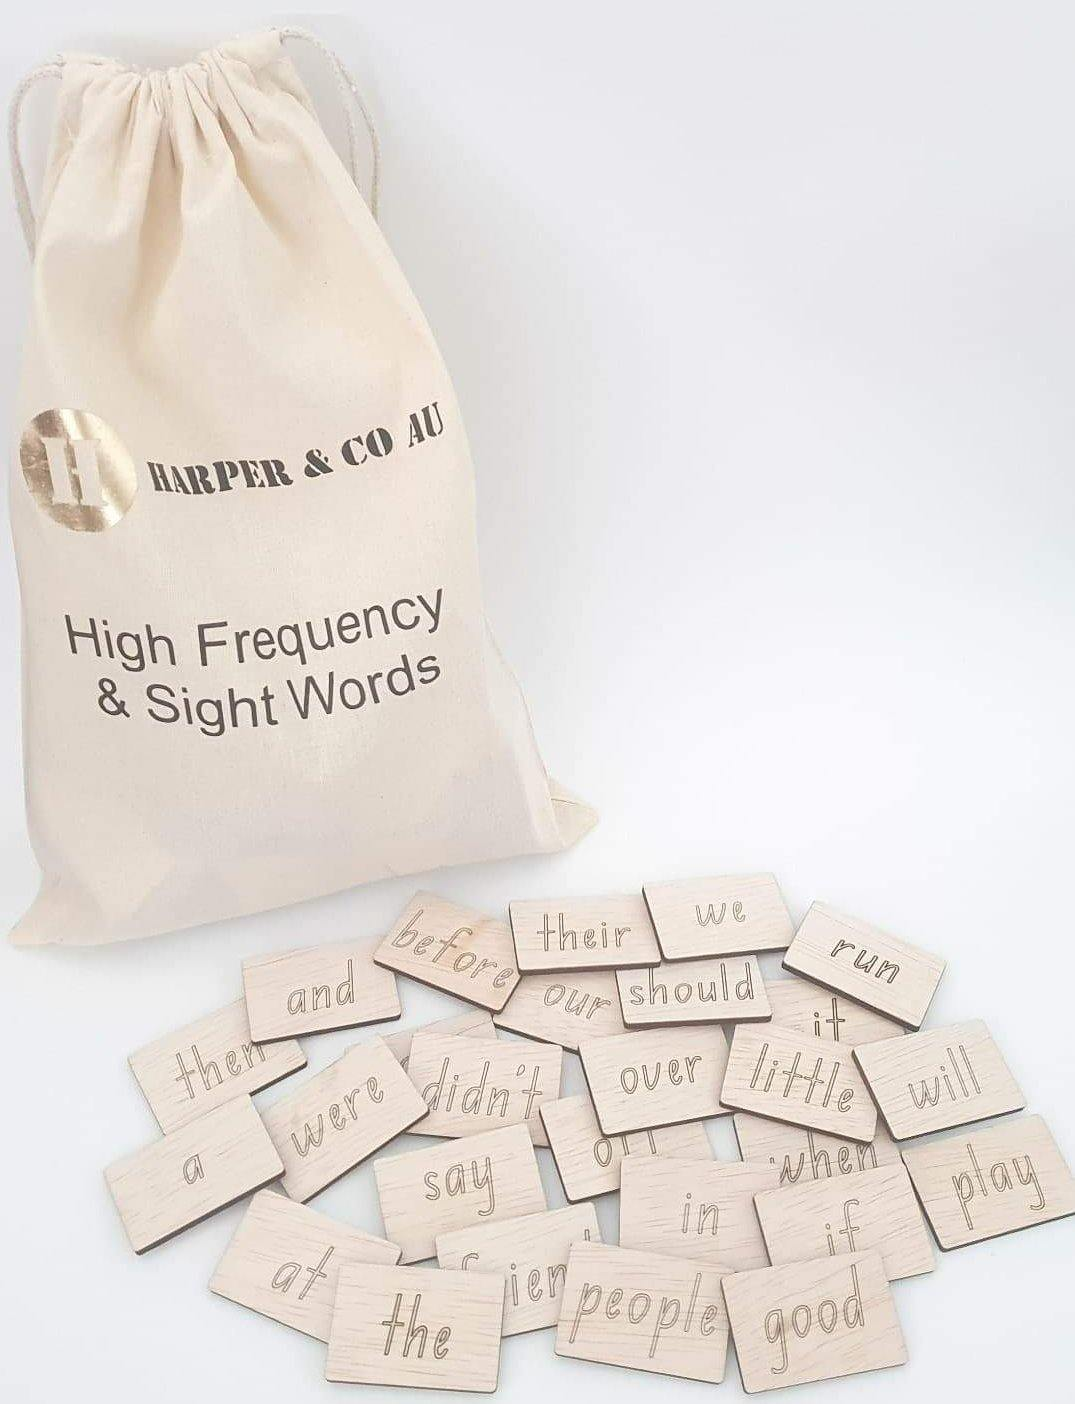 100 High Frequency & Sight Words - Harper & CO AU